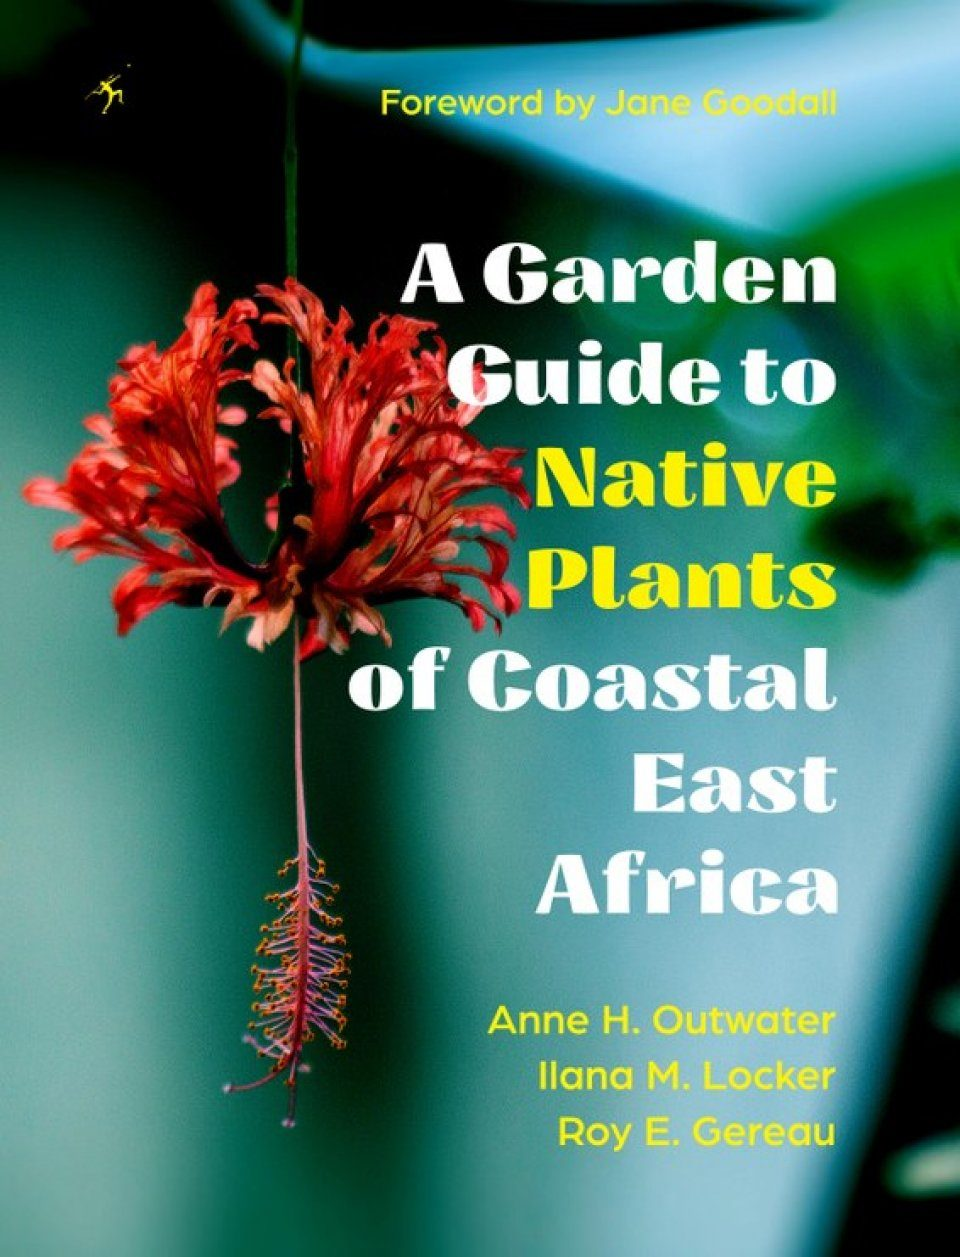 A Garden Guide to Native Plants of Coastal East Africa